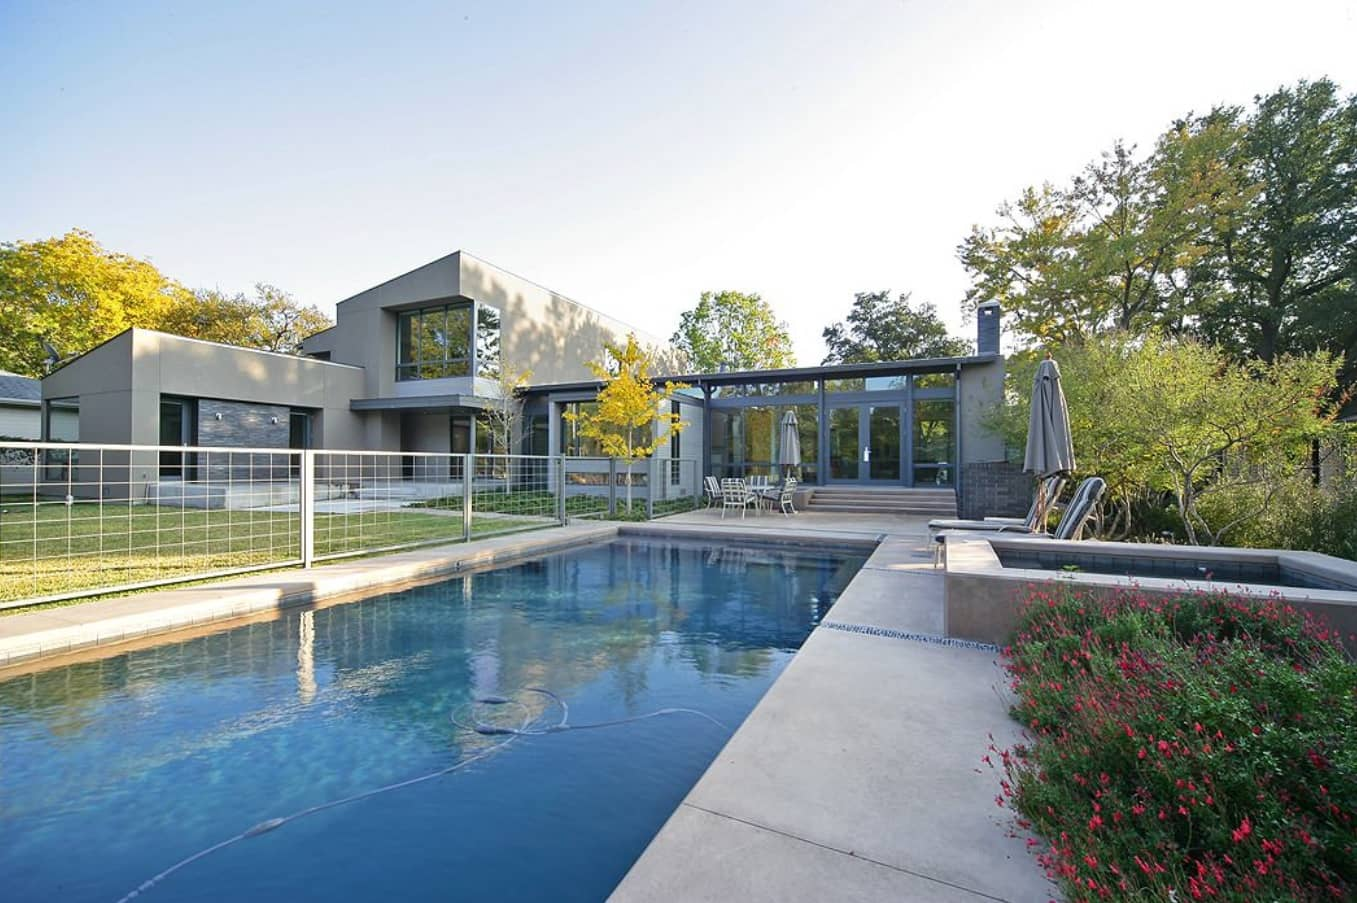 How to Choose the Appropriate Fence For Your Yard? The pool in the modern private house's courtyard with metal netting as a fence